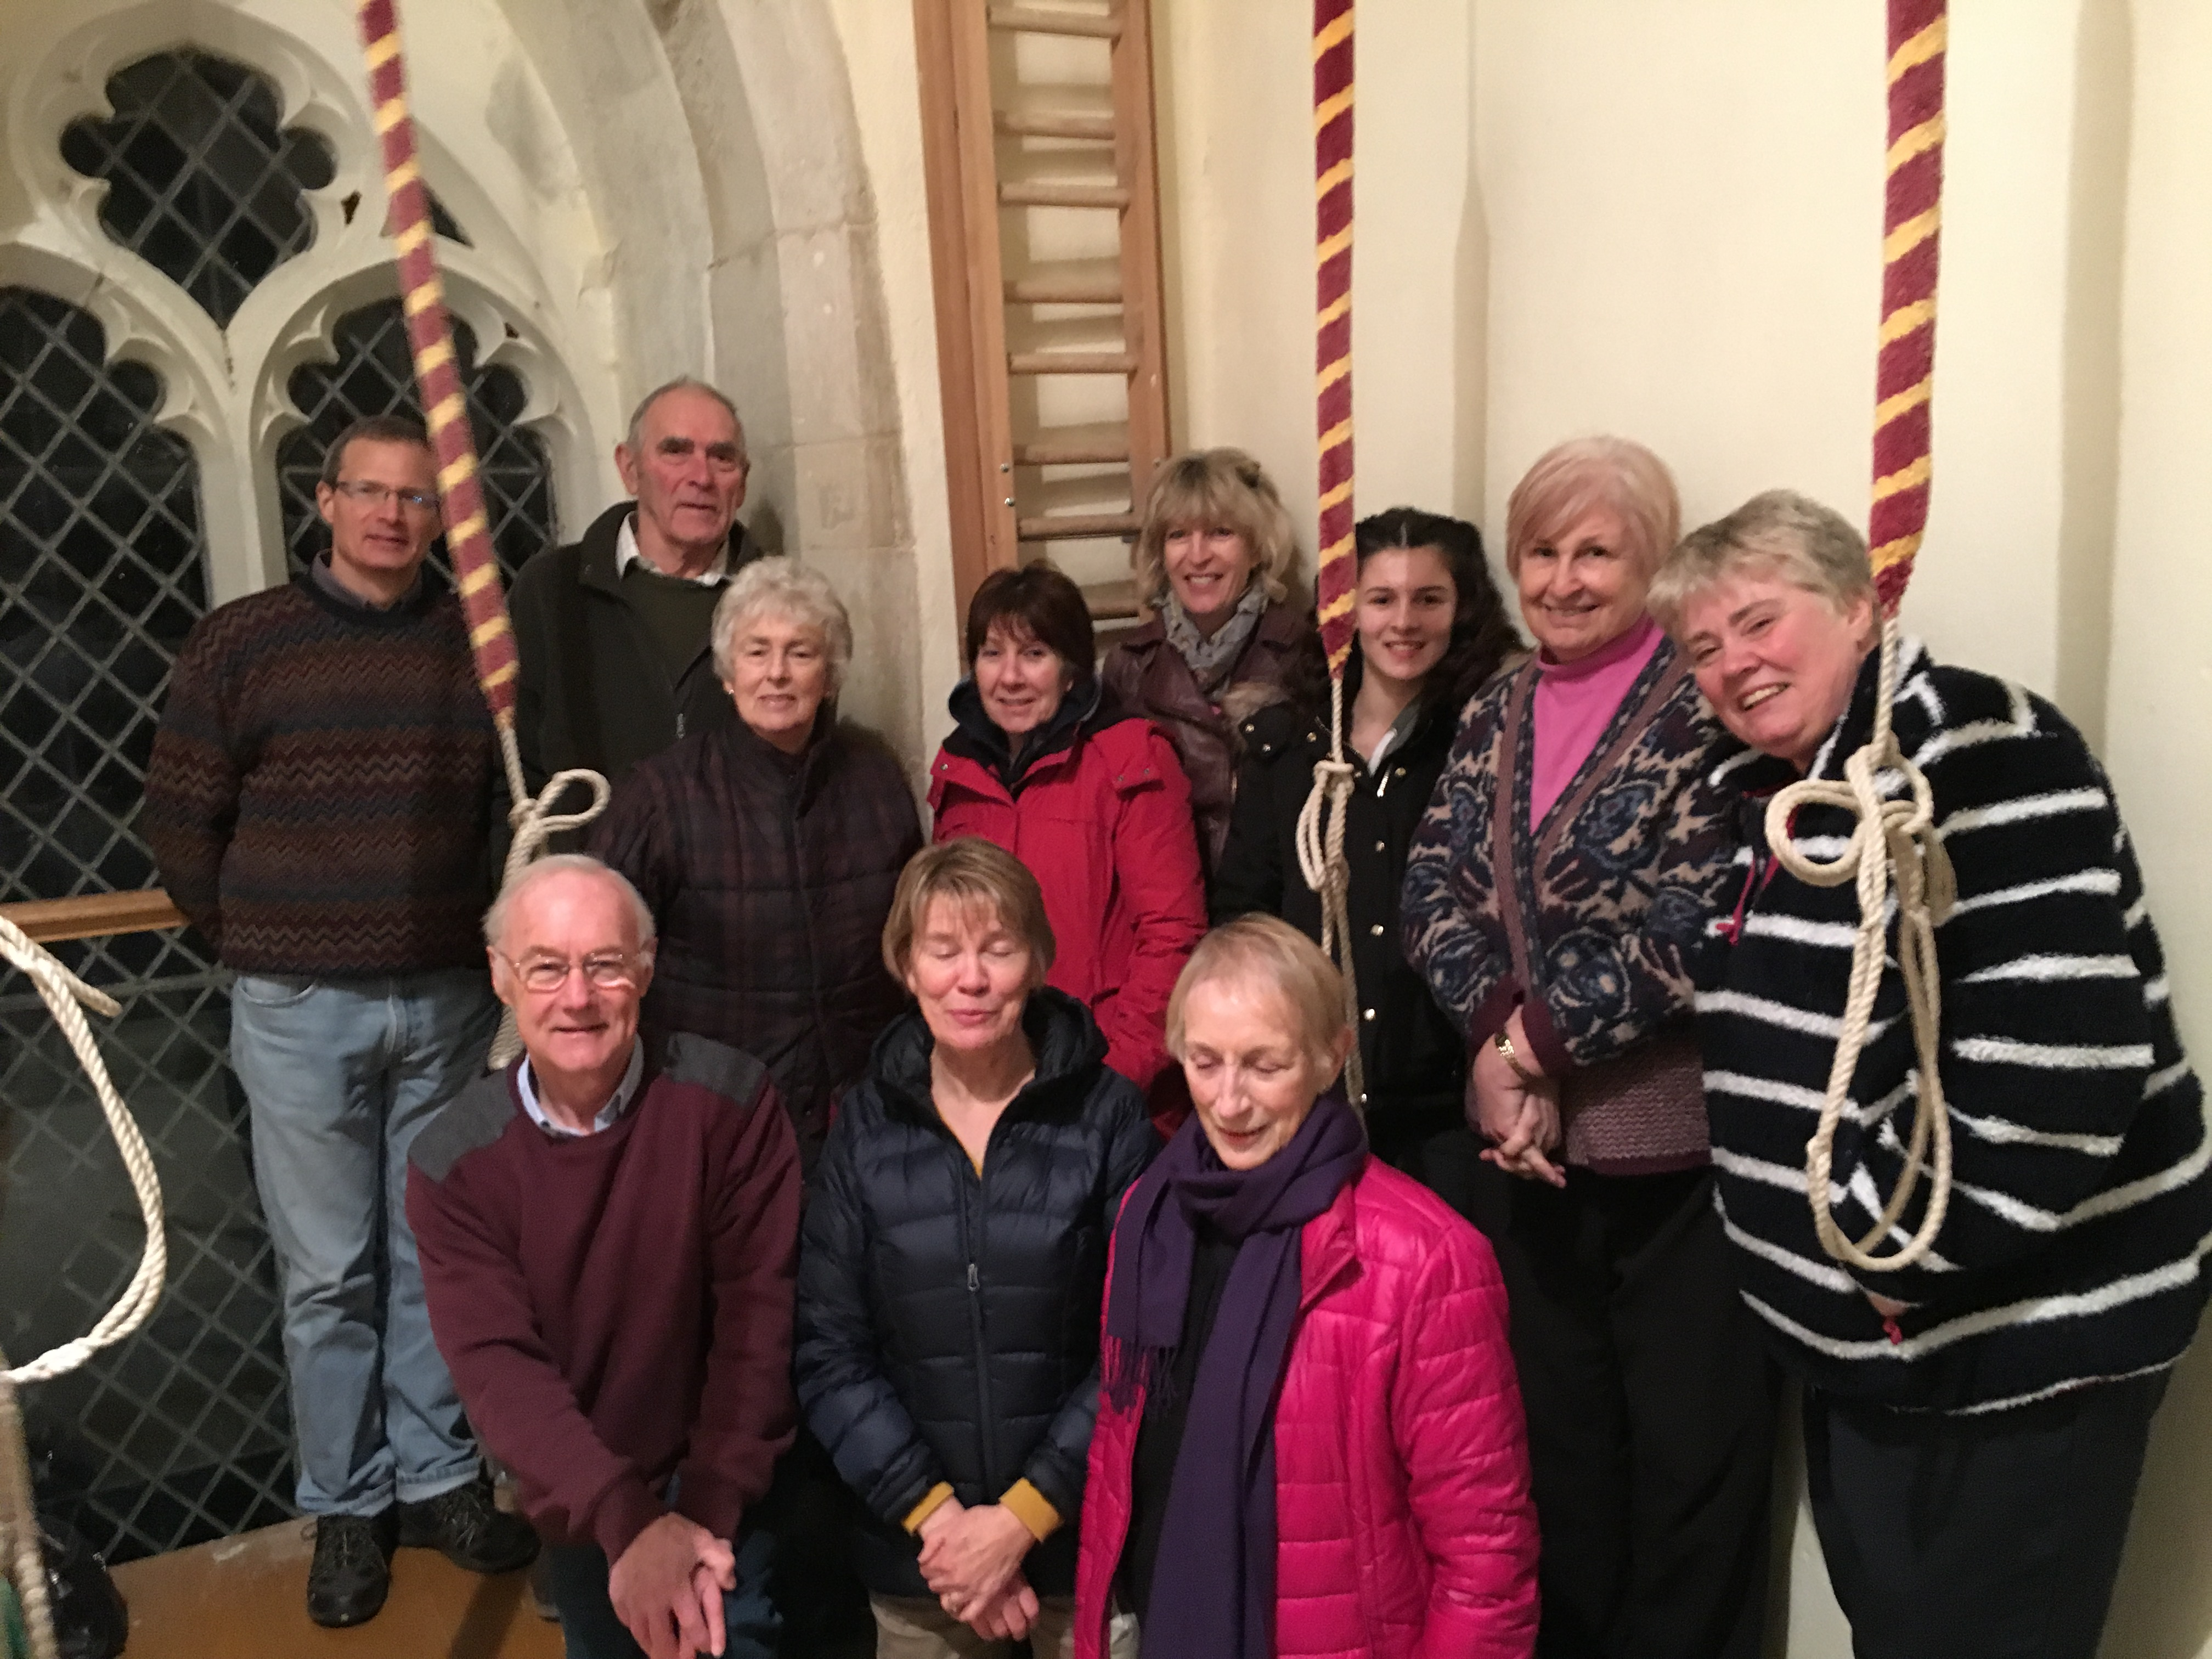 Some of Great Chishill's ringers, January 2018